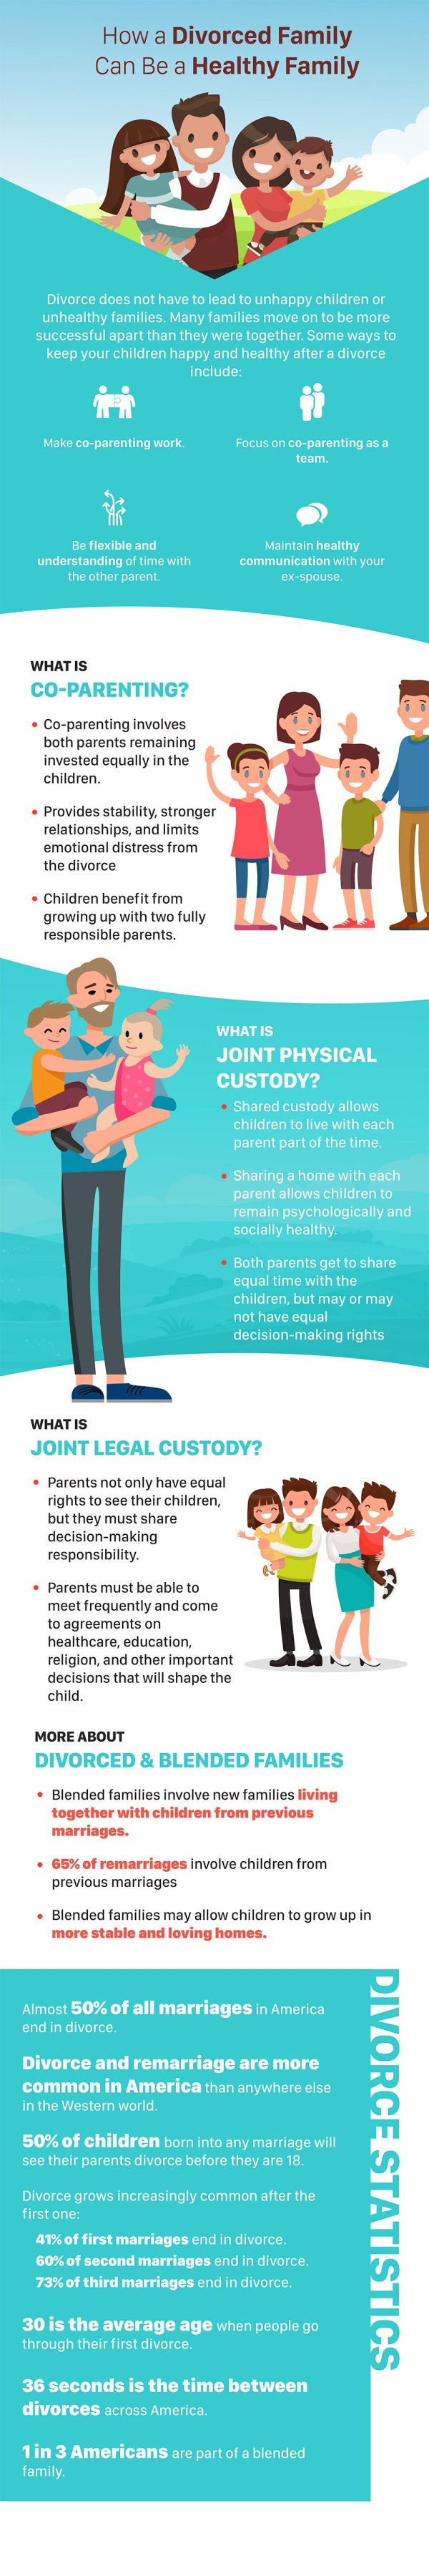 how-a-divorced-family-can-be-a-healthy-family-infographic